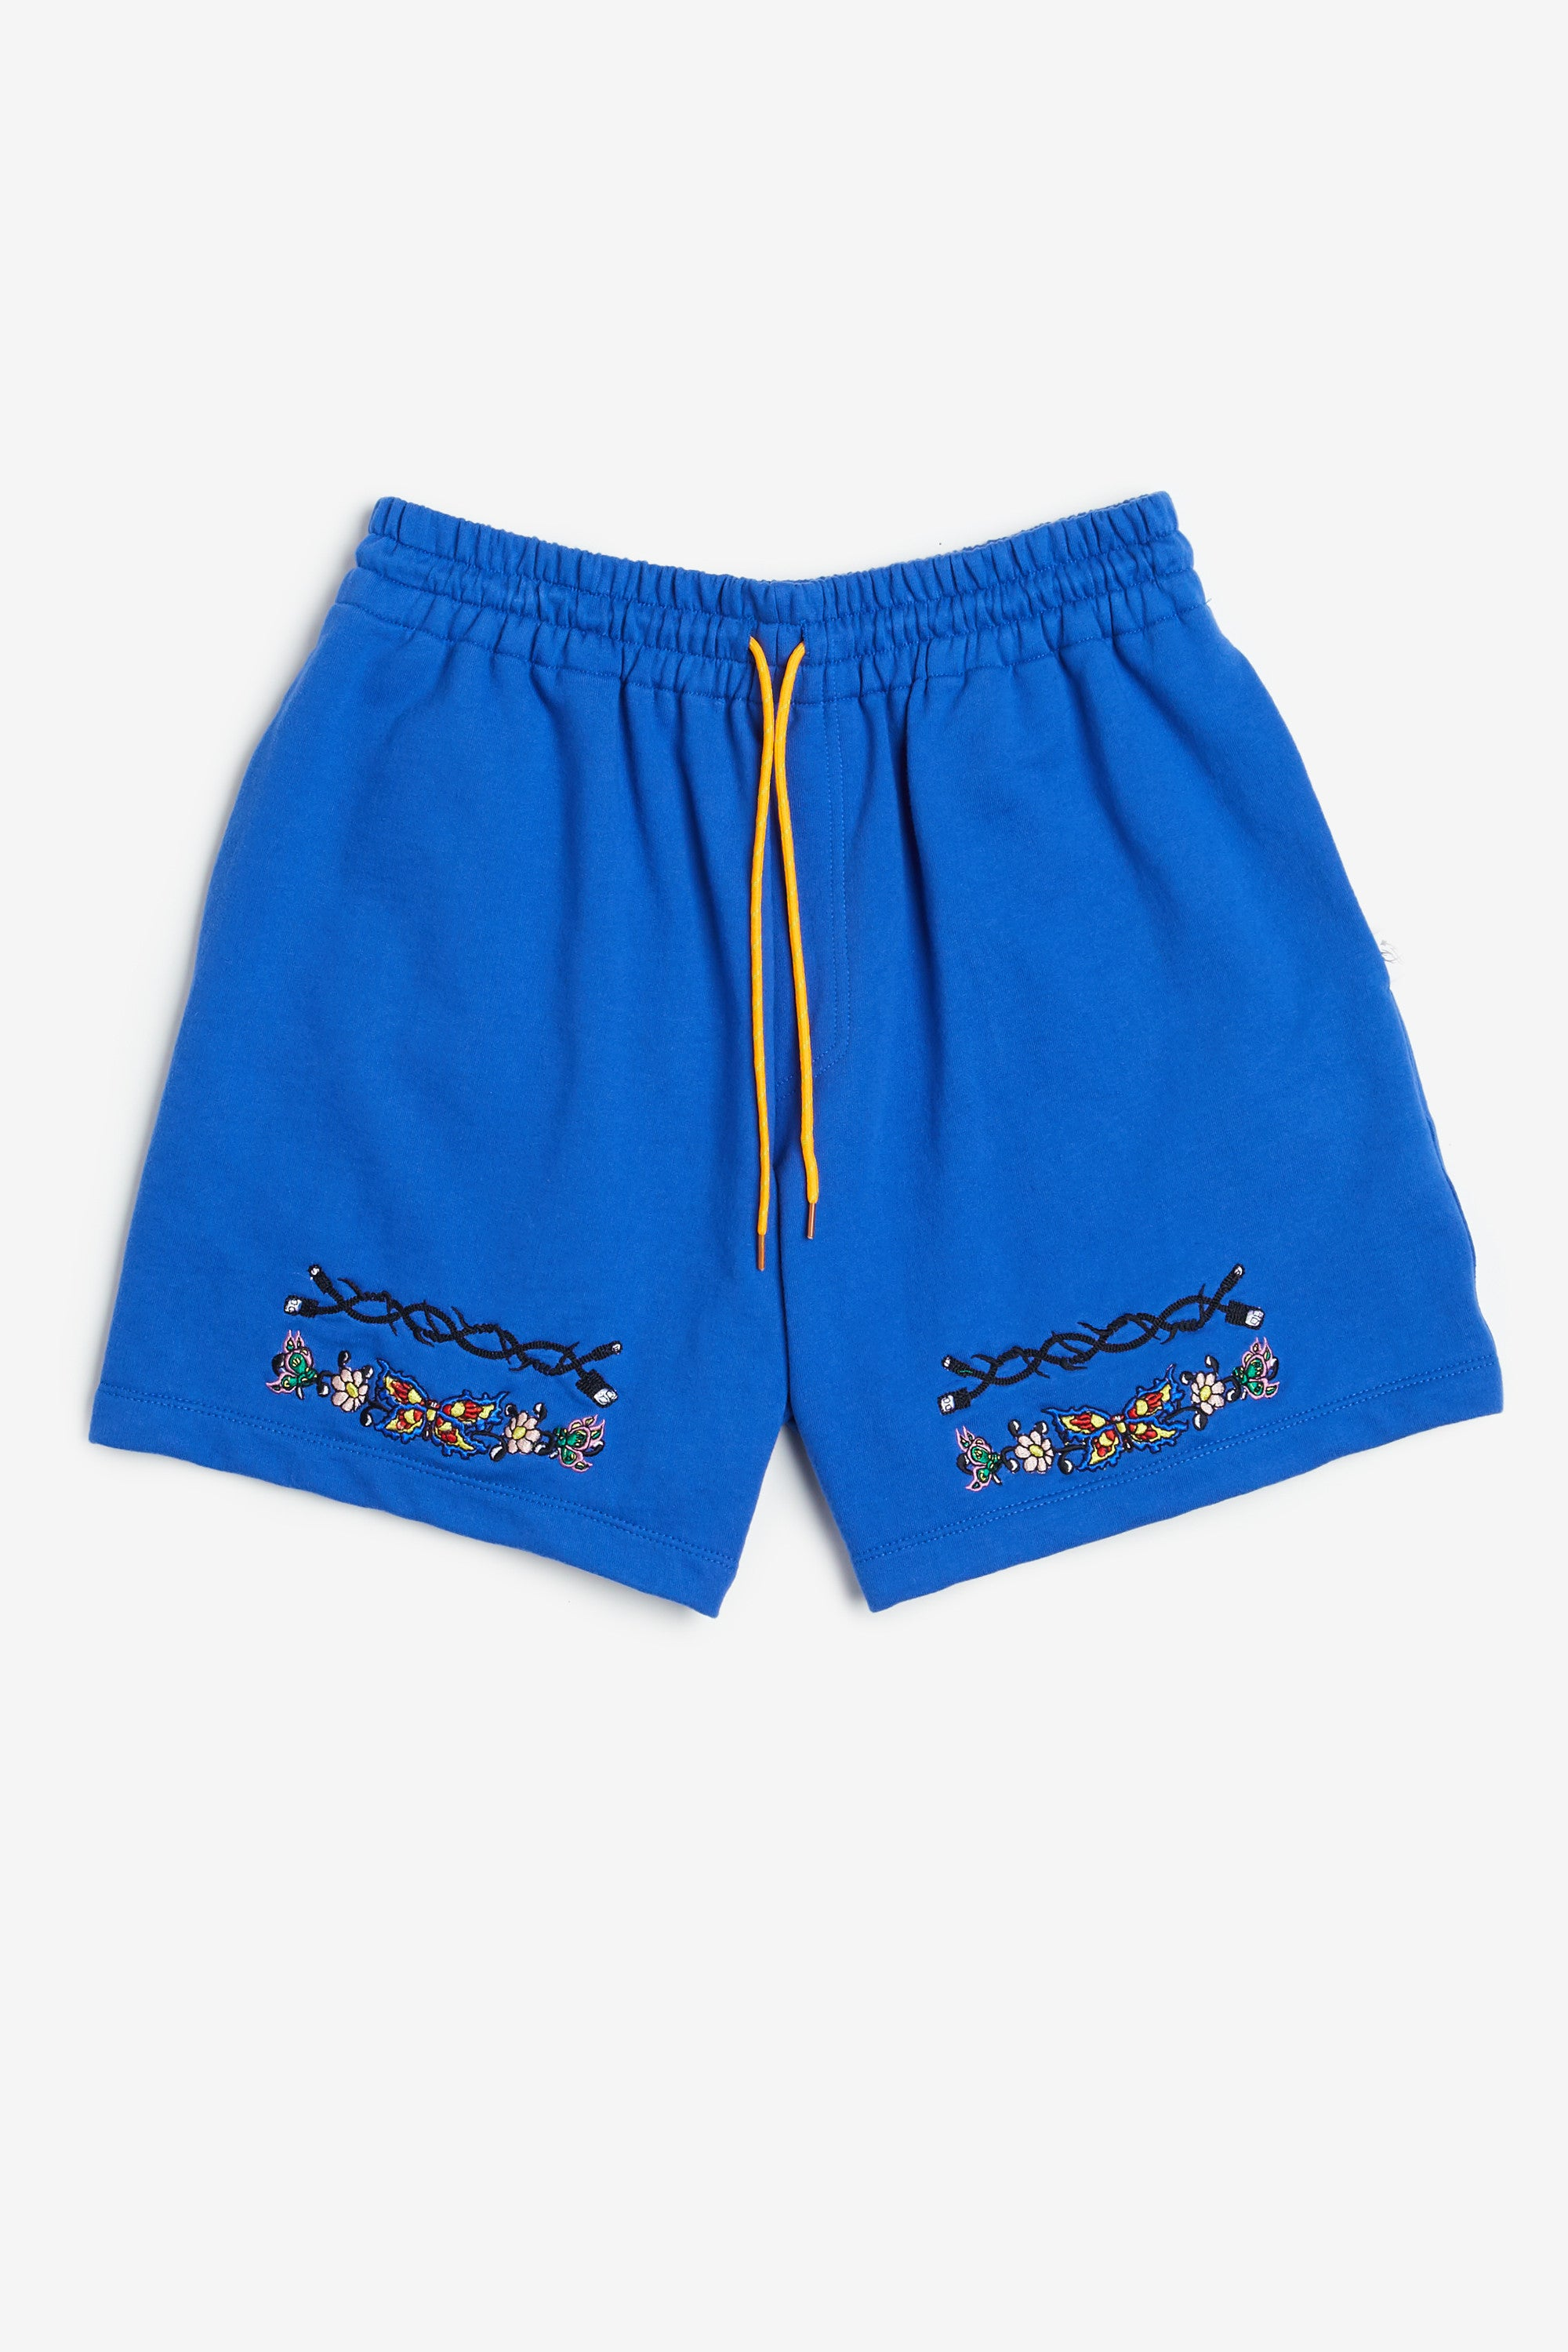 Embroidered Butterfly Shorts